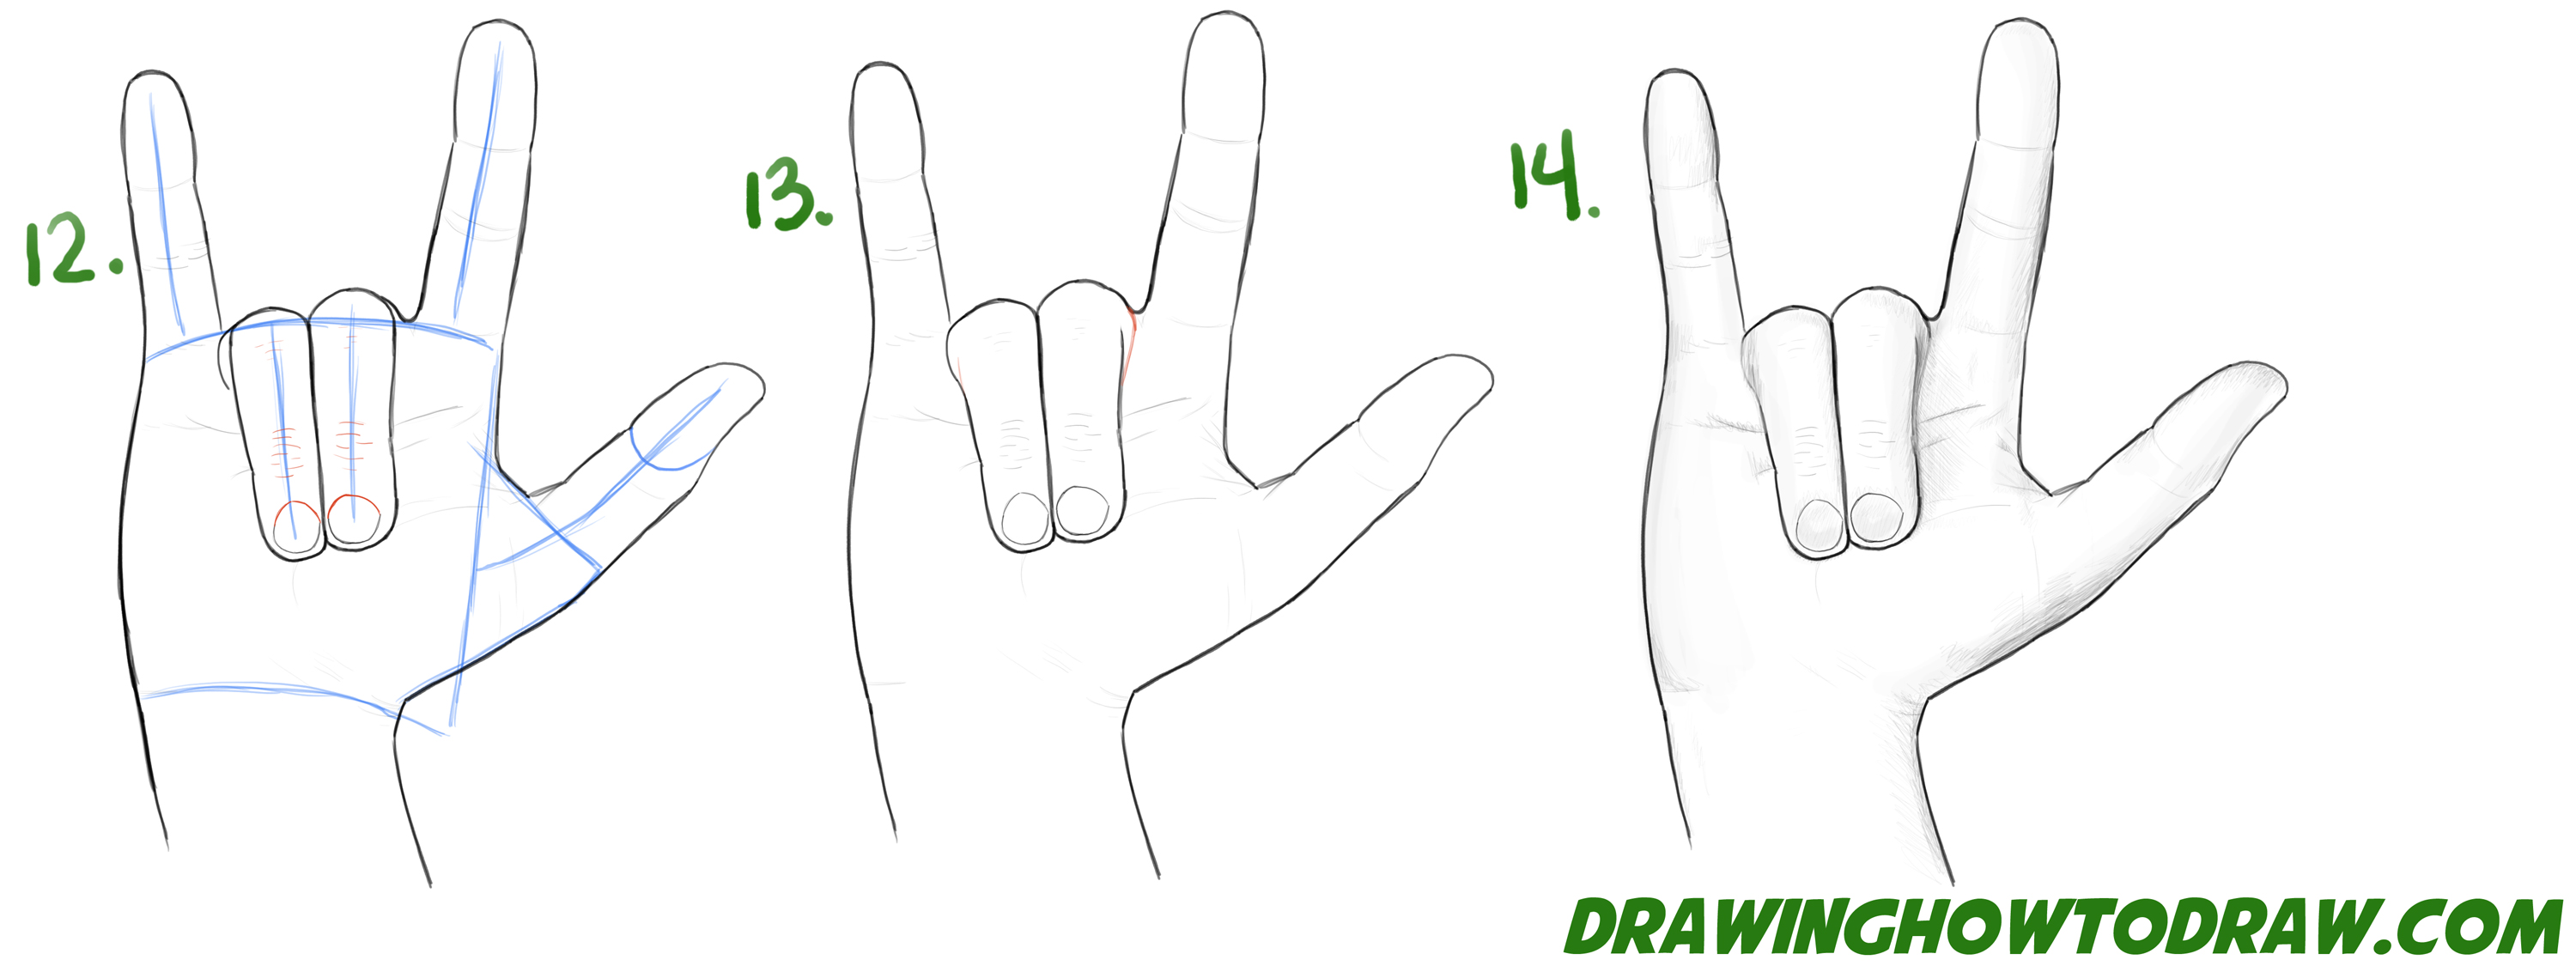 Learn How to Draw Love Hands - Sign Language for Love - Simple Steps Drawing Lesson for Beginners